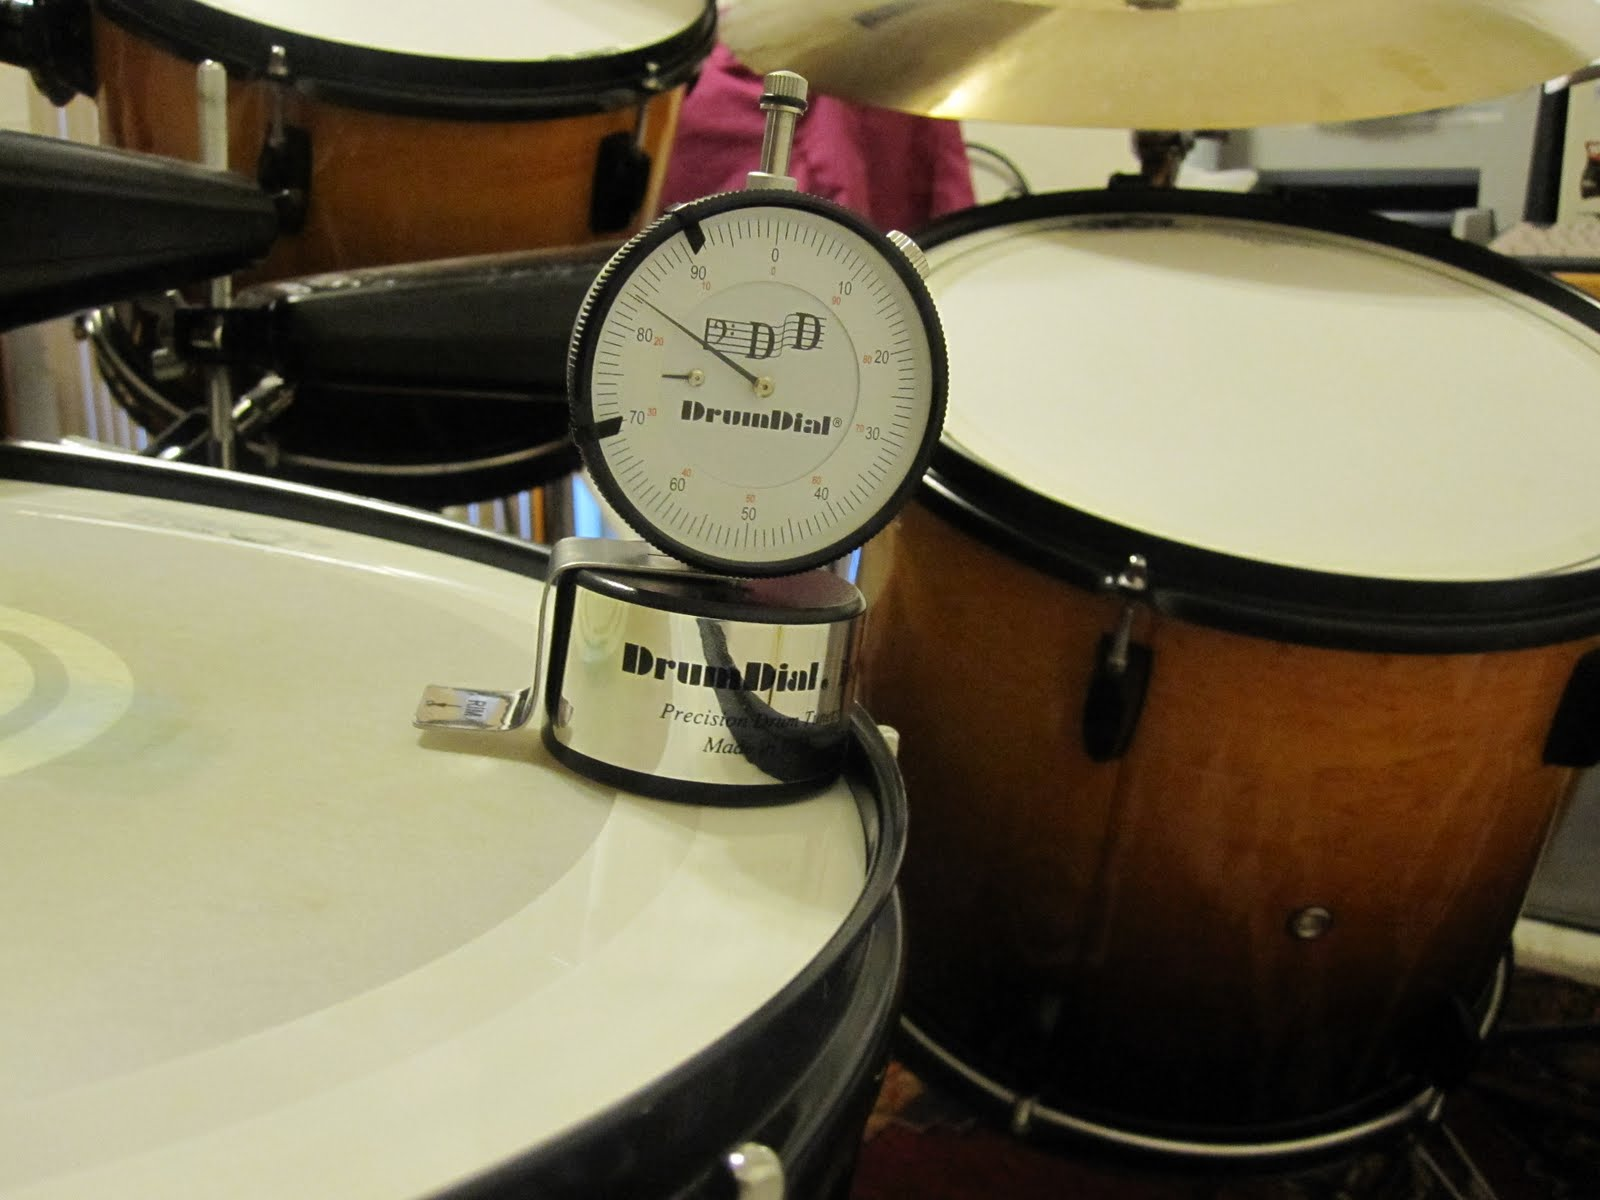 Tammy Drums to the Beat: Tuning Drums